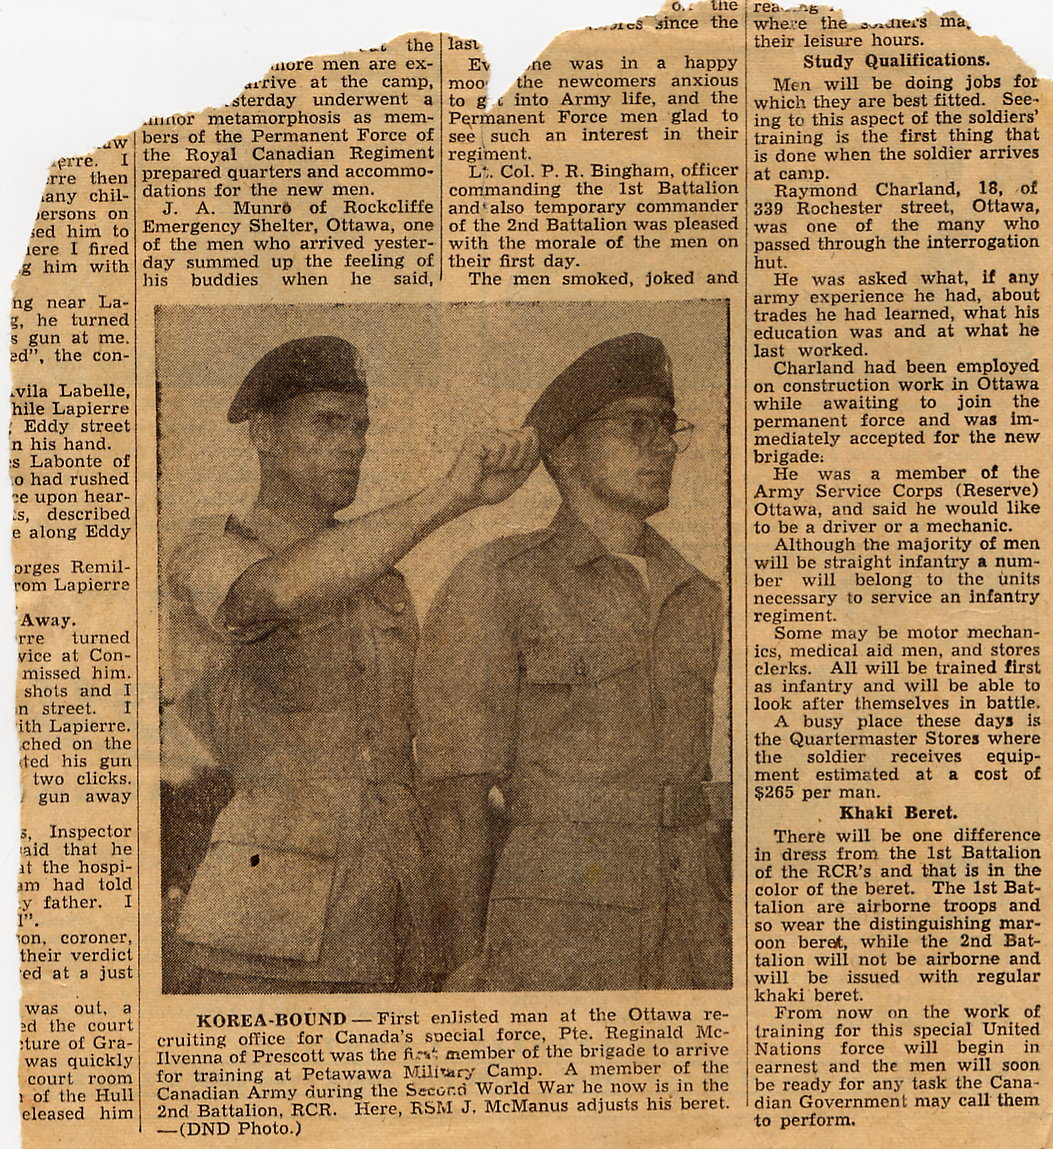 1_Korea-Preparation-OttawaJOurnal article undated